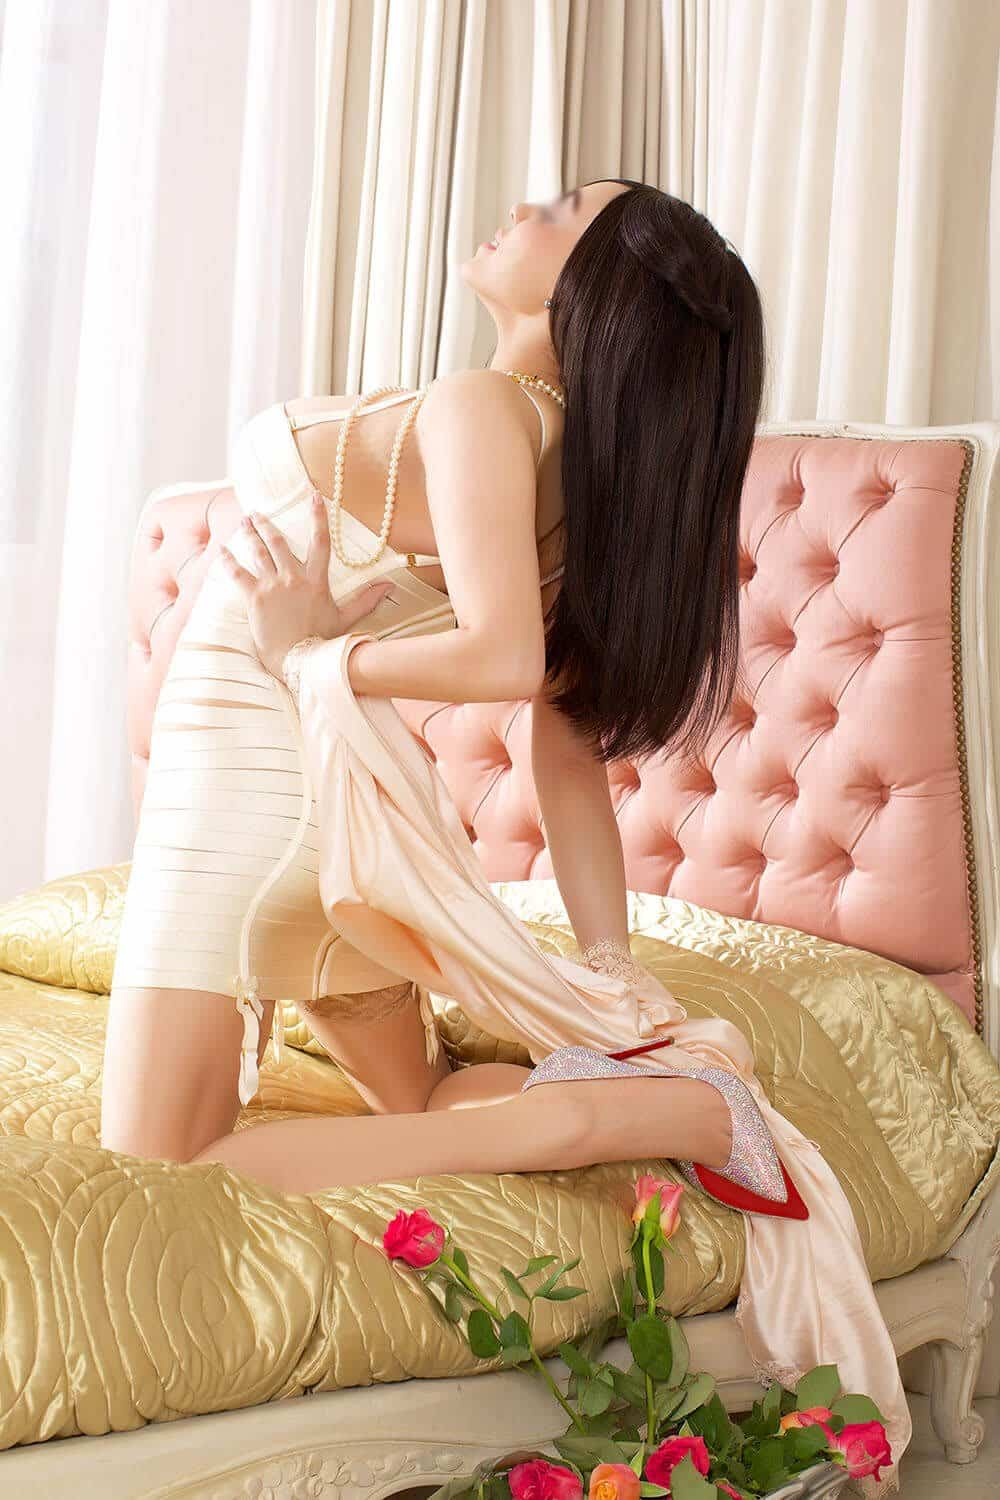 Meet British Beauty Lydia, a Gorgeous London Escort based in Sloane Square